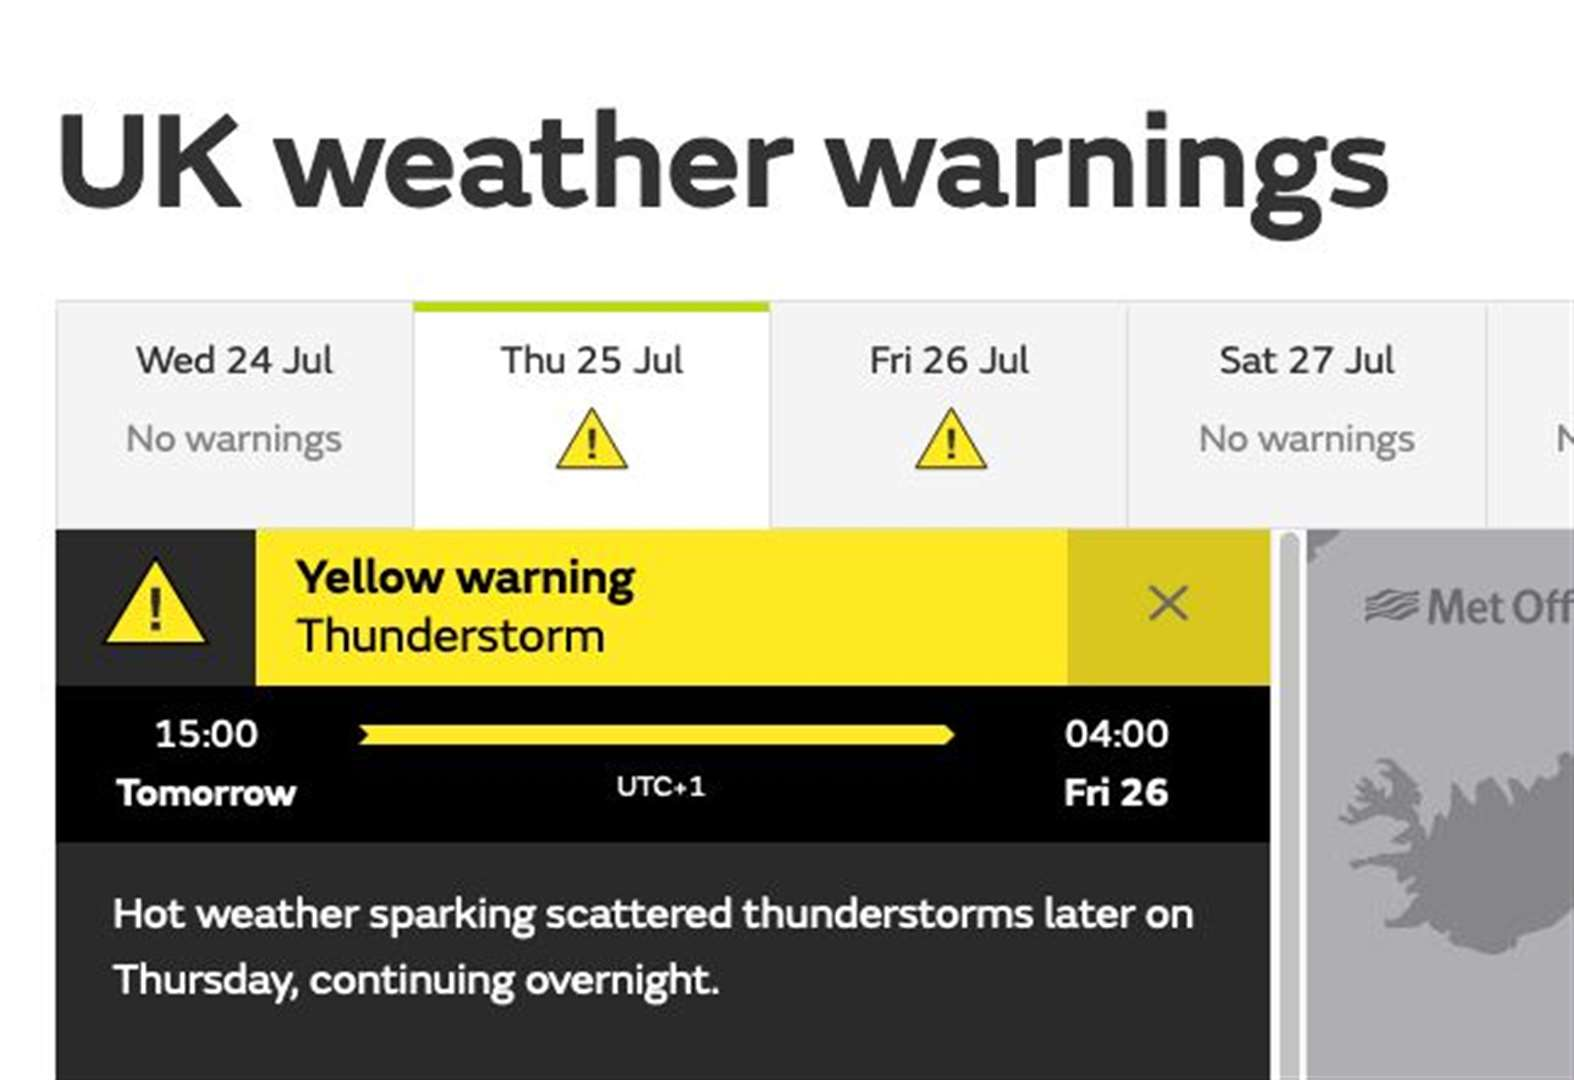 Thunderstorm warning issued for Thursday and Friday